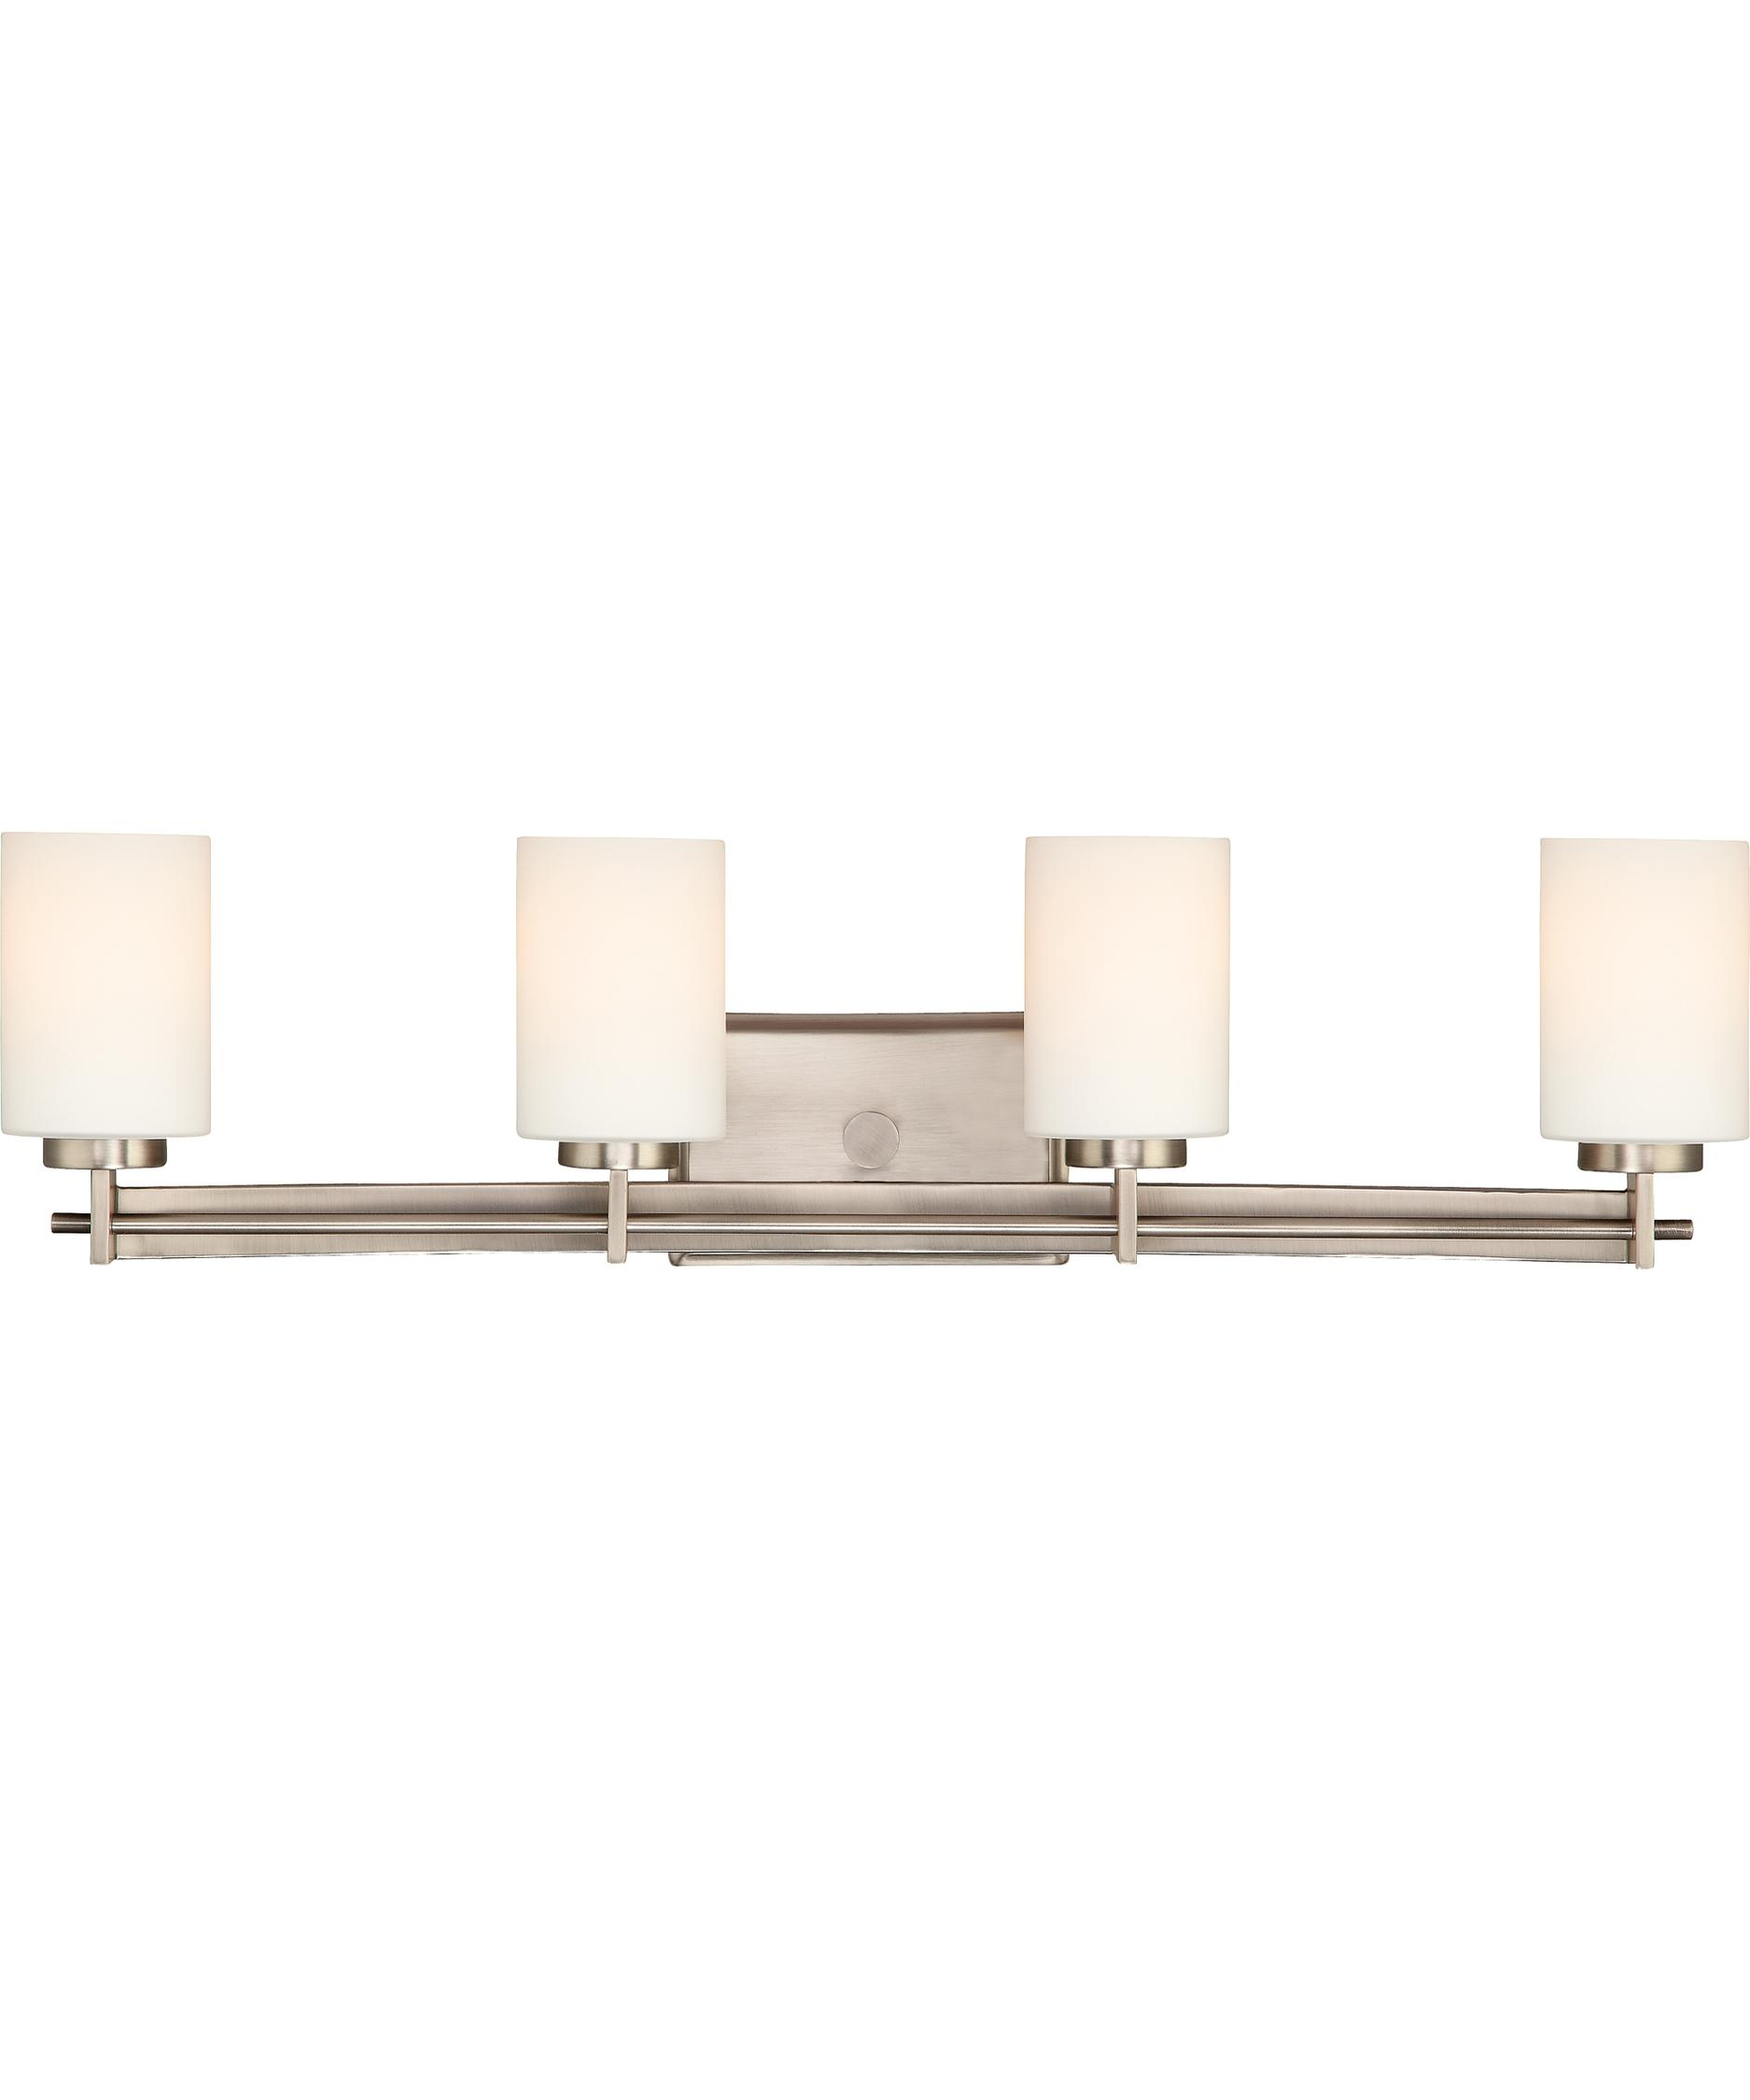 Quoizel Bathroom Vanity Lights : Quoizel Taylor 30 Inch Bath Vanity Light Capitol Lighting 1-800lighting.com